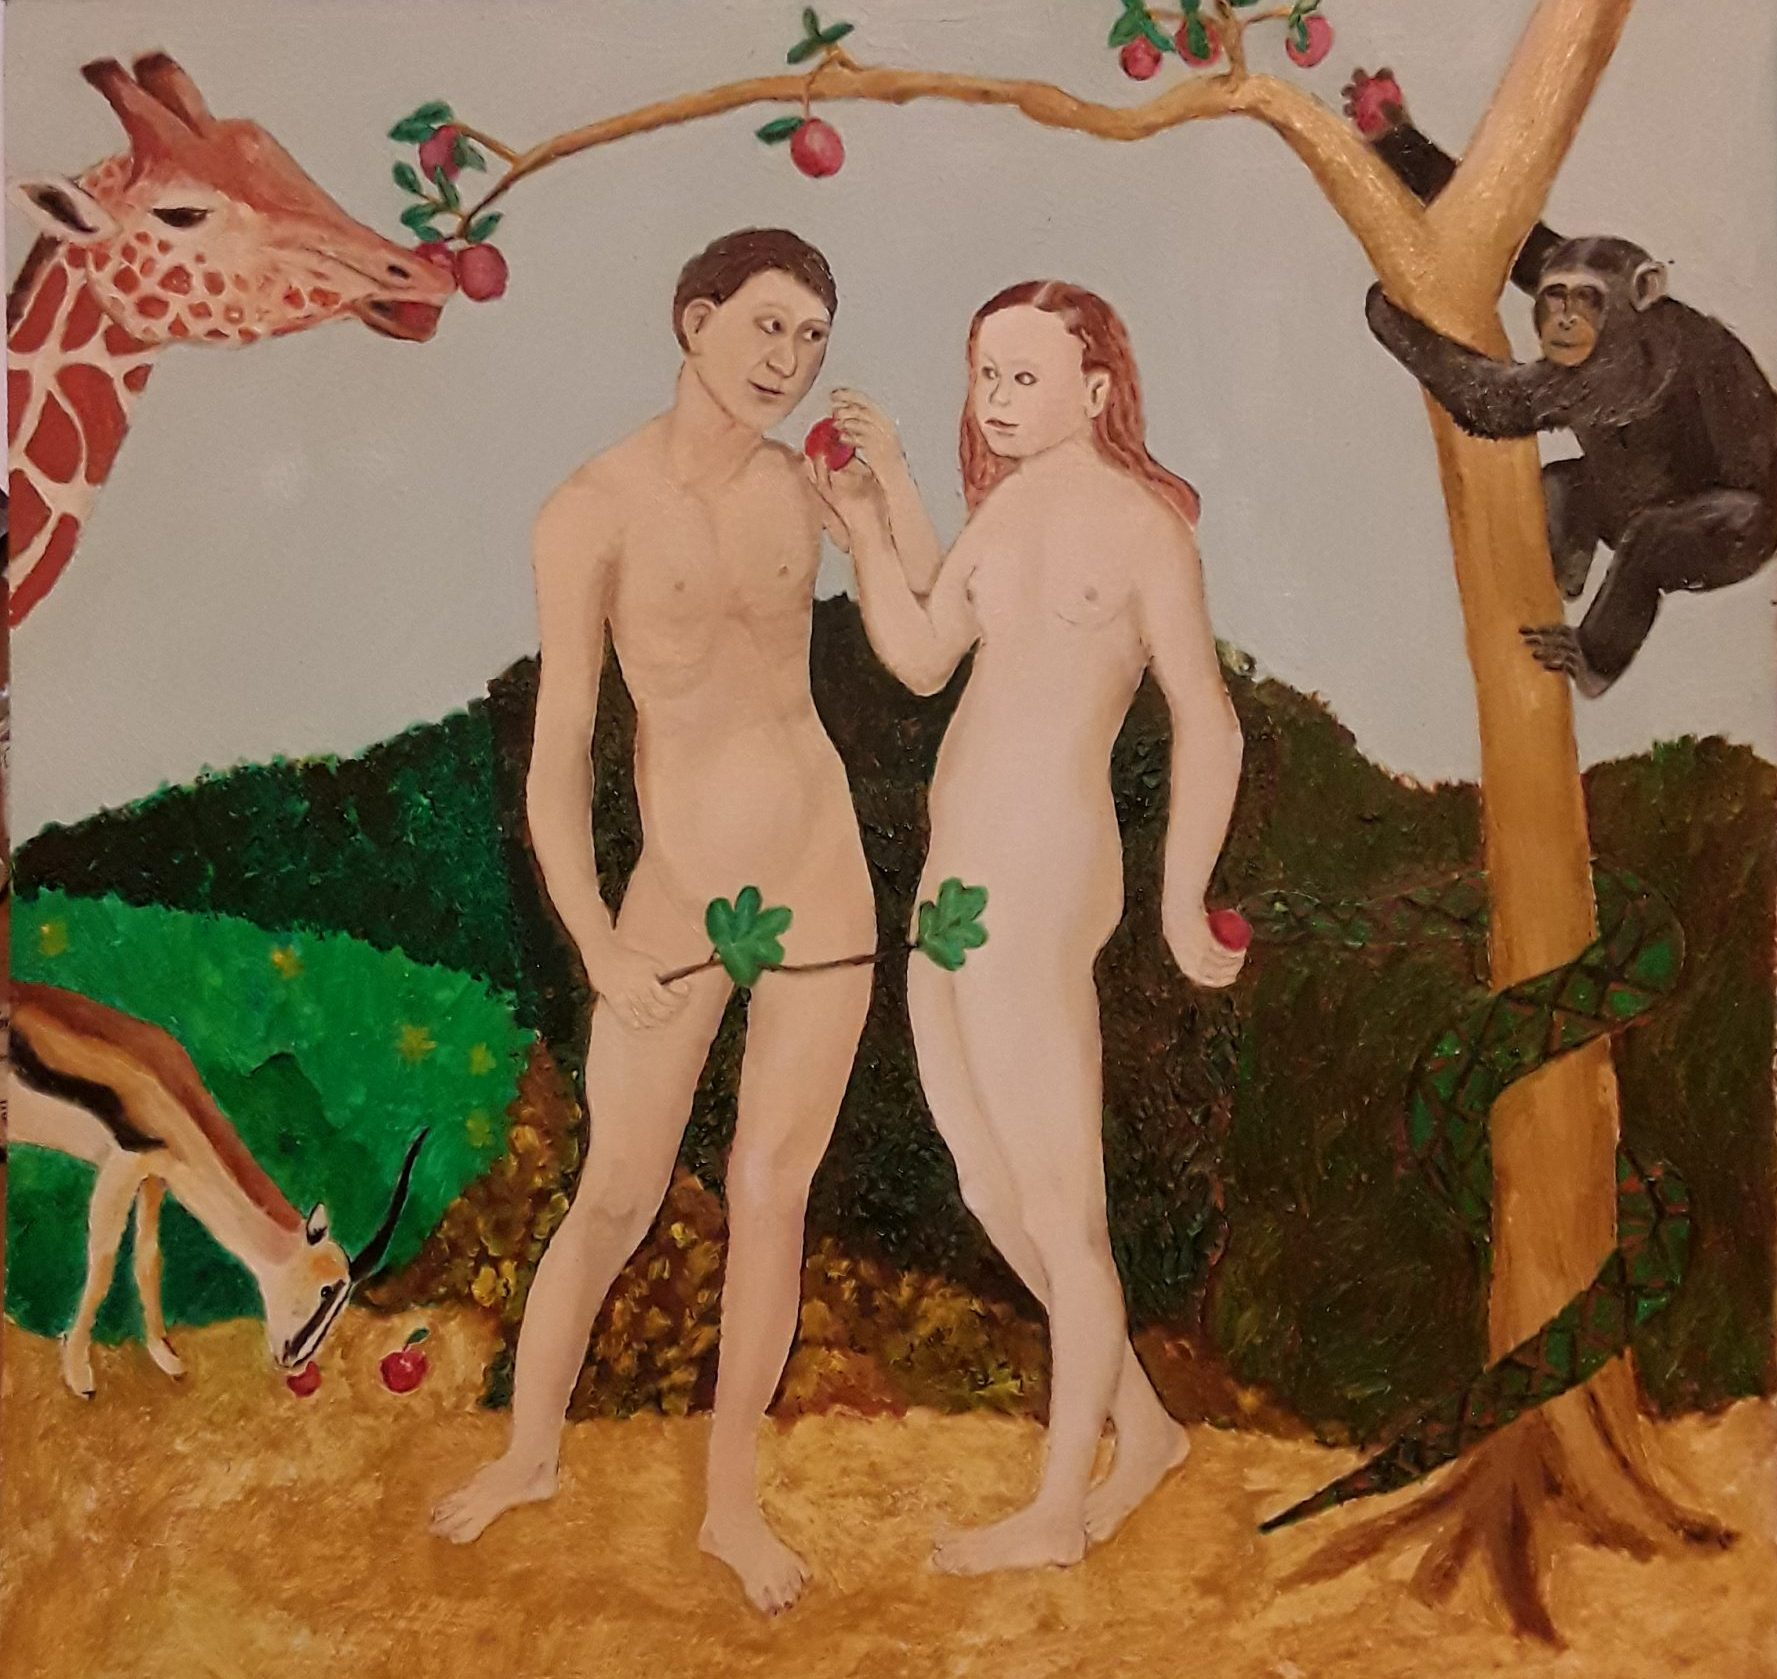 Adam and Eve without navels